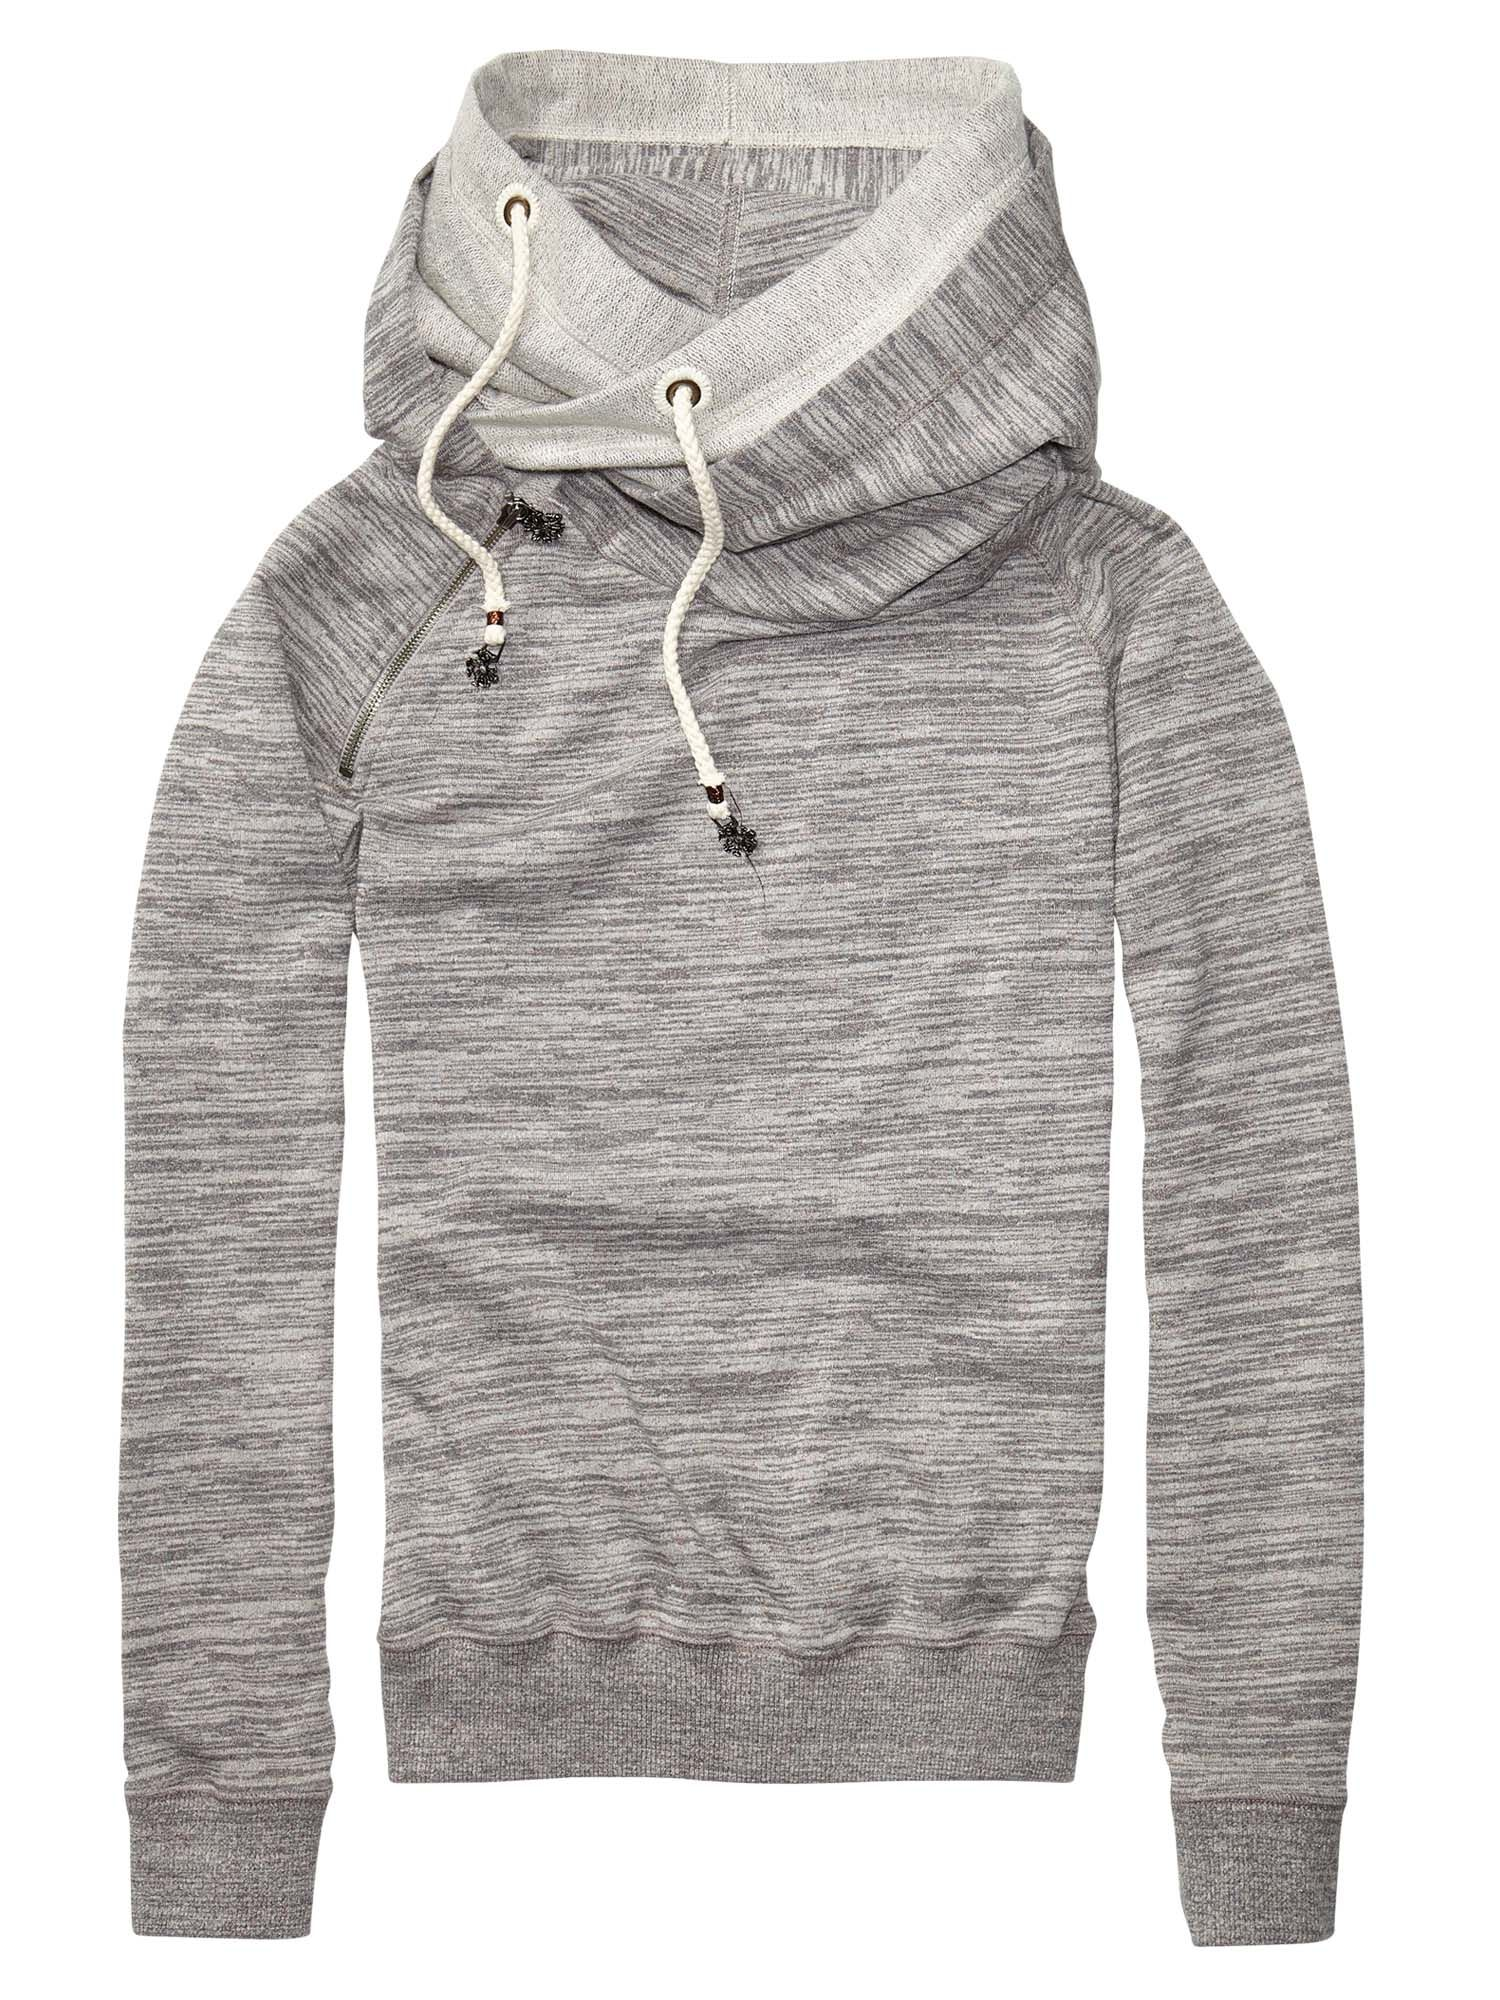 Home Alone Sweater With Double Layer Hood - Maison Scotch ...